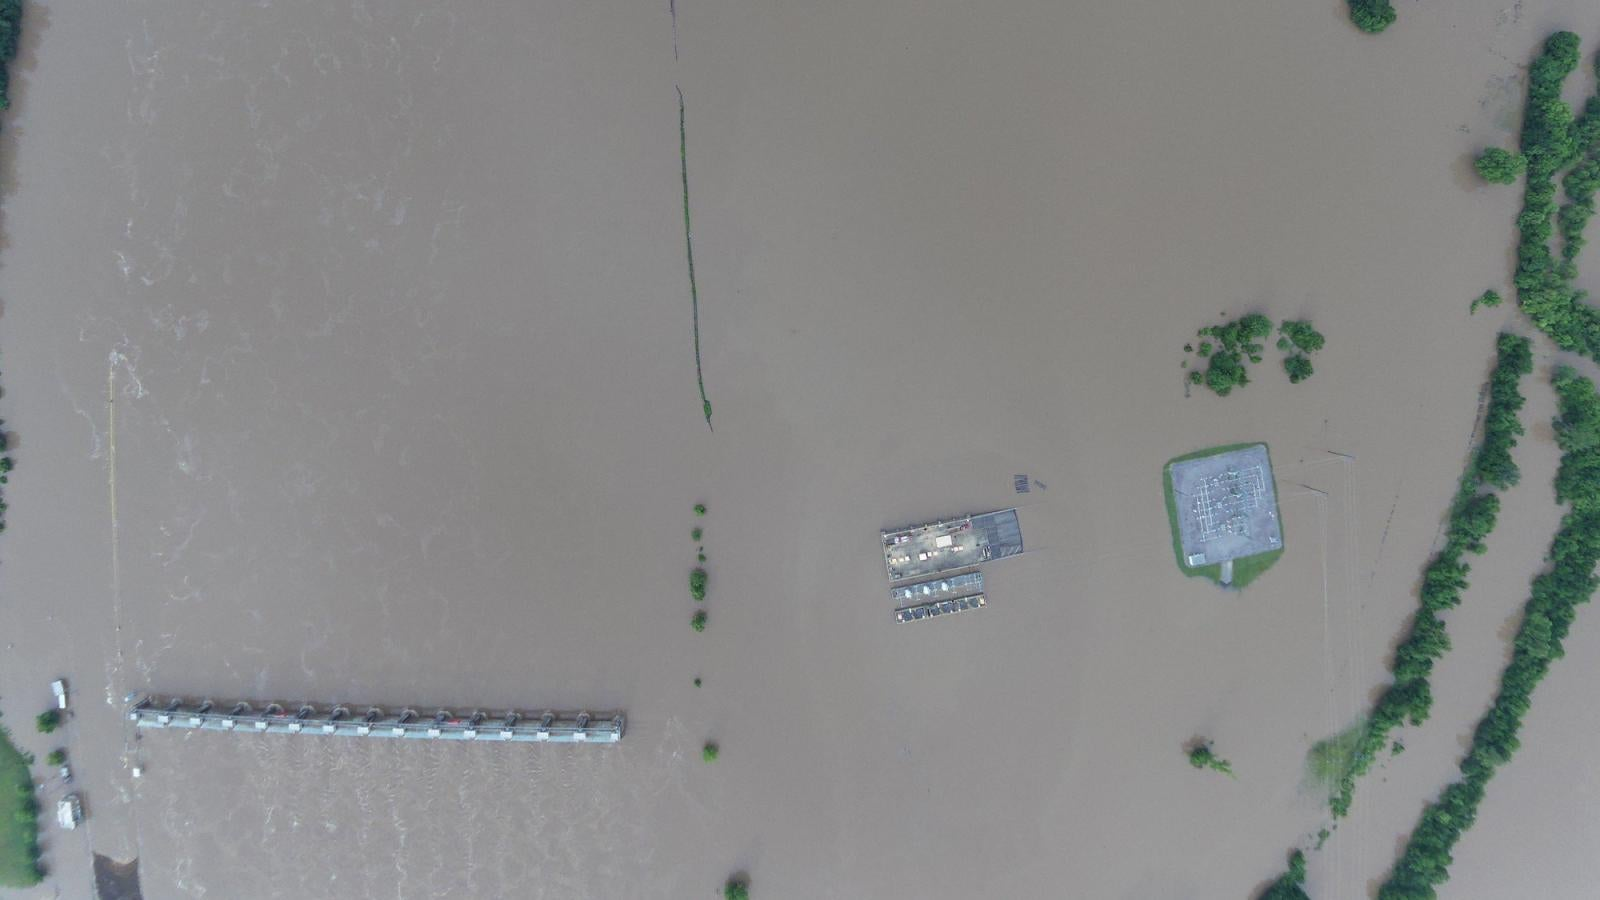 Overhead view of flood damage